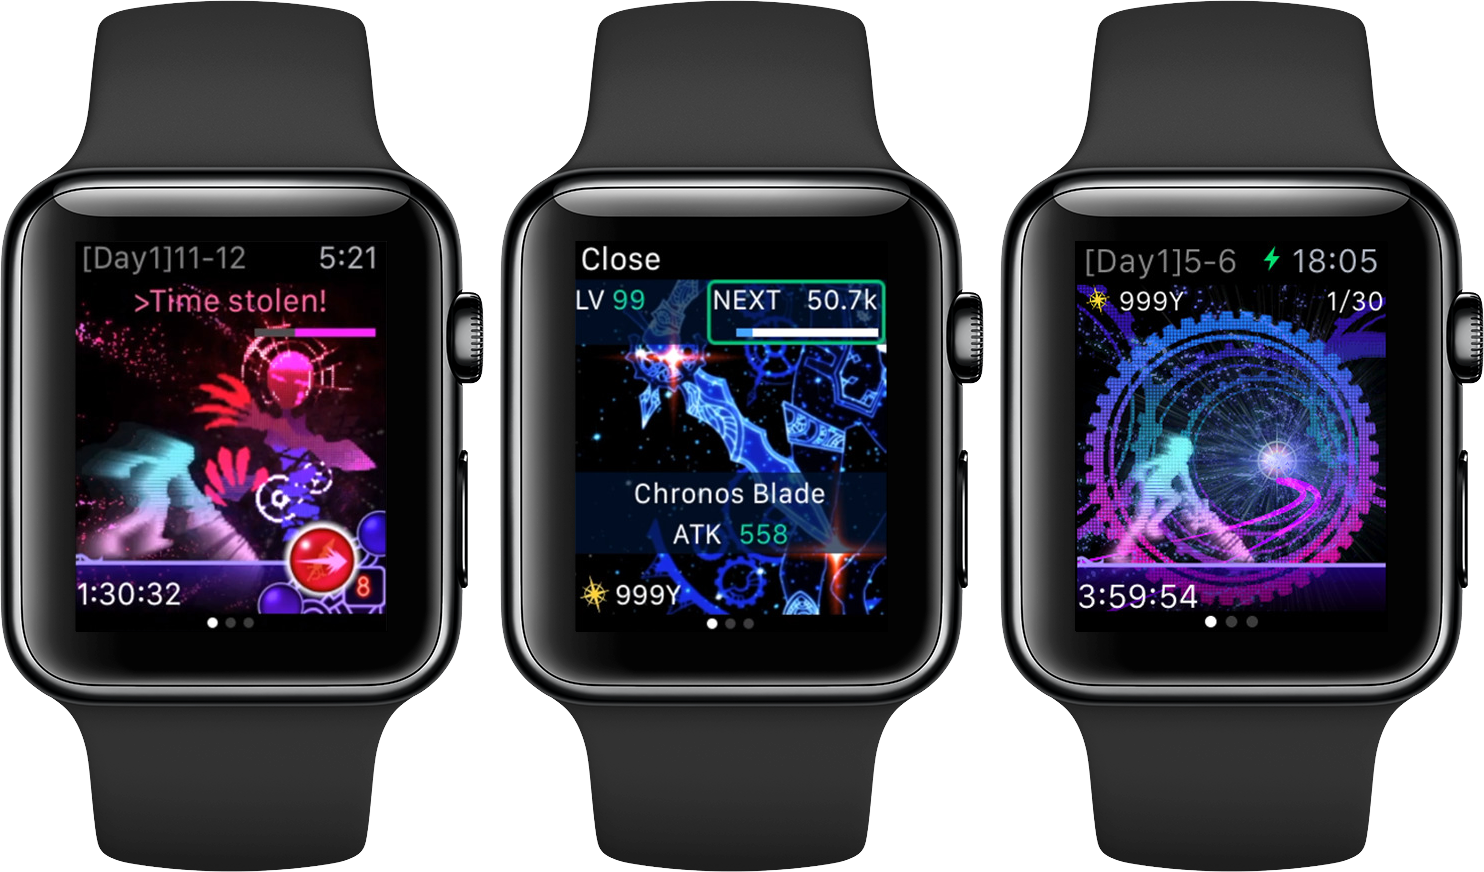 gioco rpg apple watch